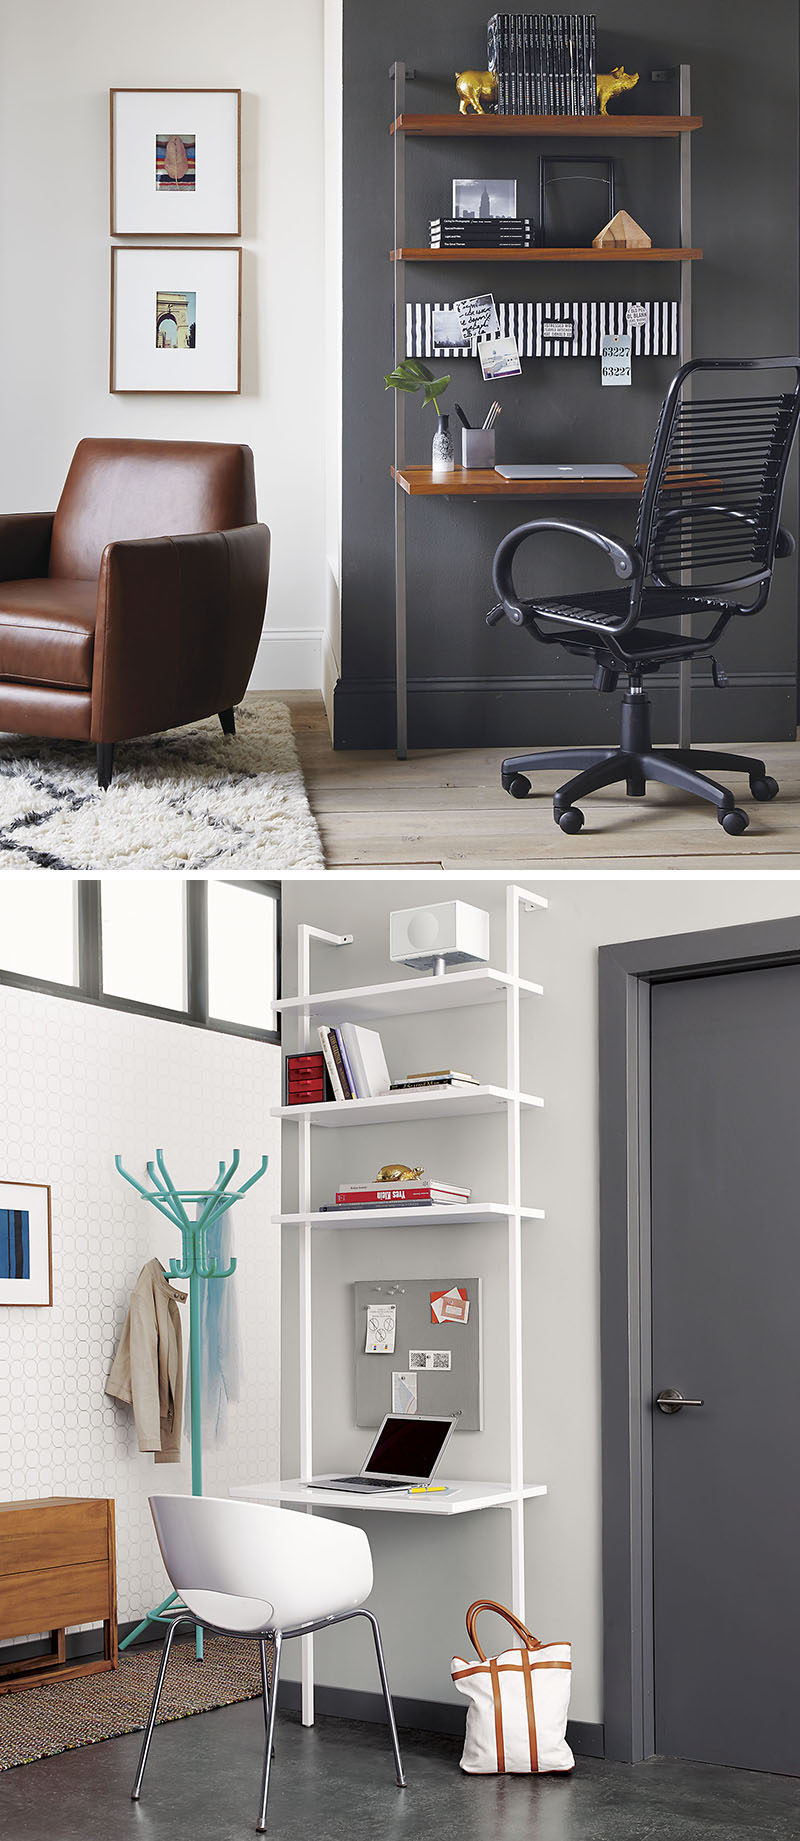 16 Wall Desk Ideas That Are Great For Small Spaces This Shelving System Mounts